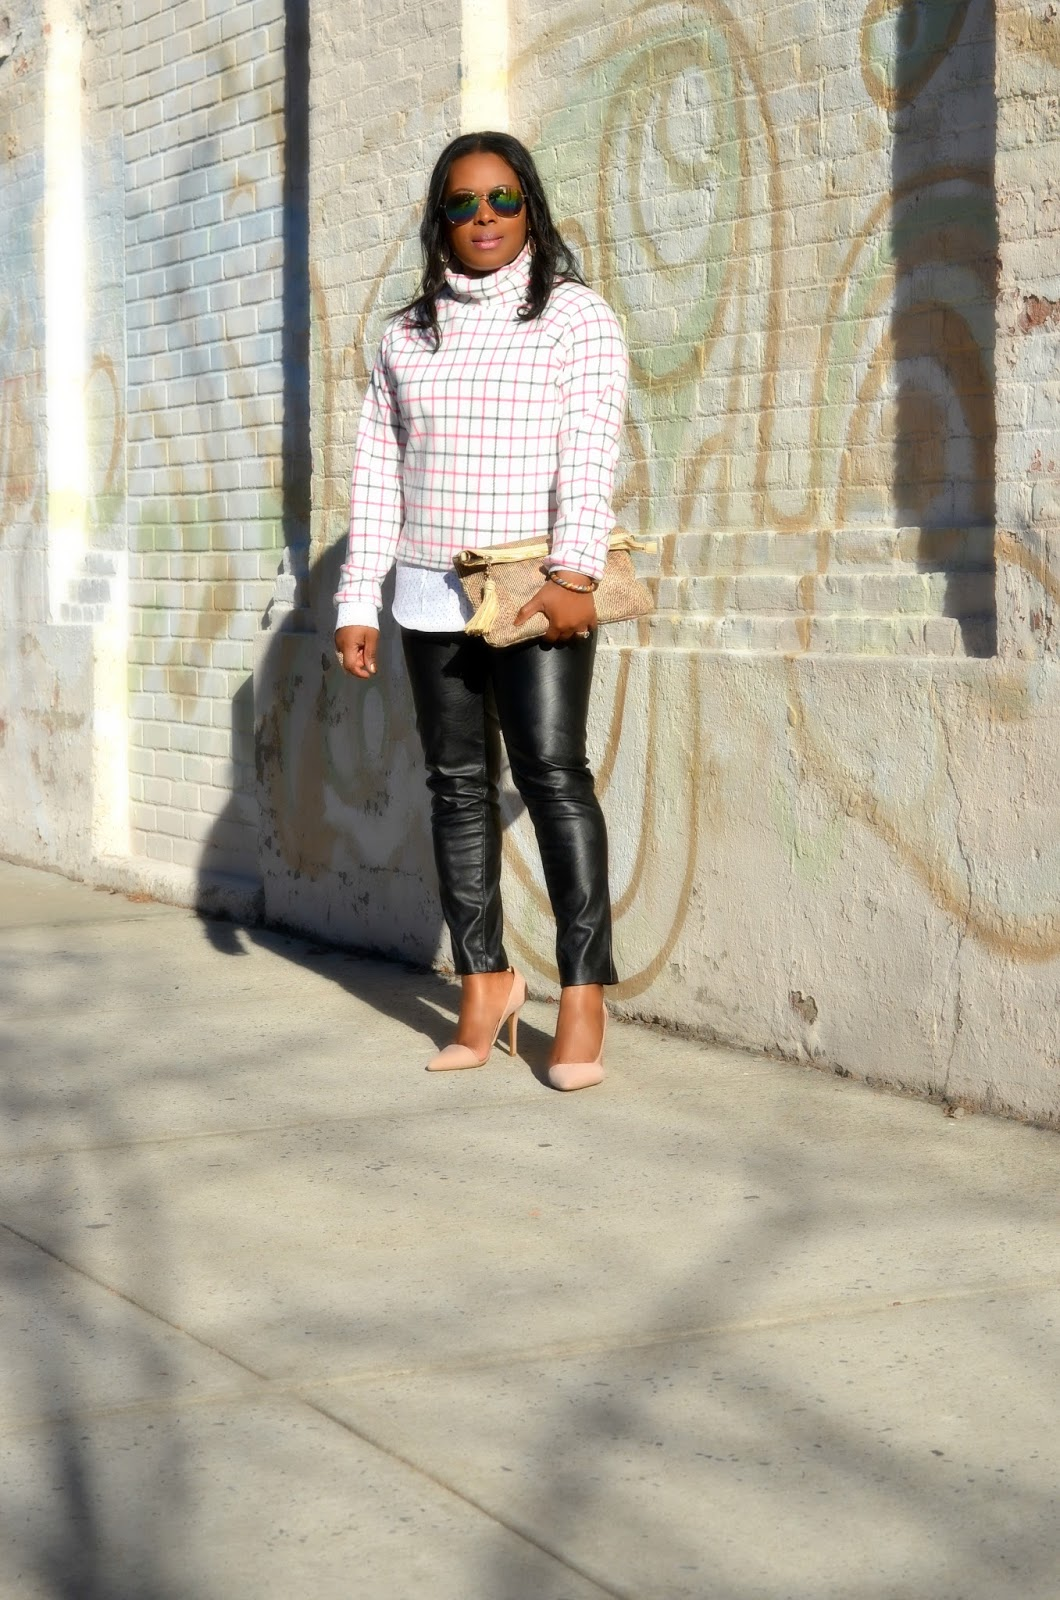 Blank NYC Vegan Leather Skinny Jeans.Button-down.Shirt.HighNeck.MicroFleece.Top.Snakeskin.Bebe Snakeskin.Clutch.Adelia.D'orsay Nude Pumps